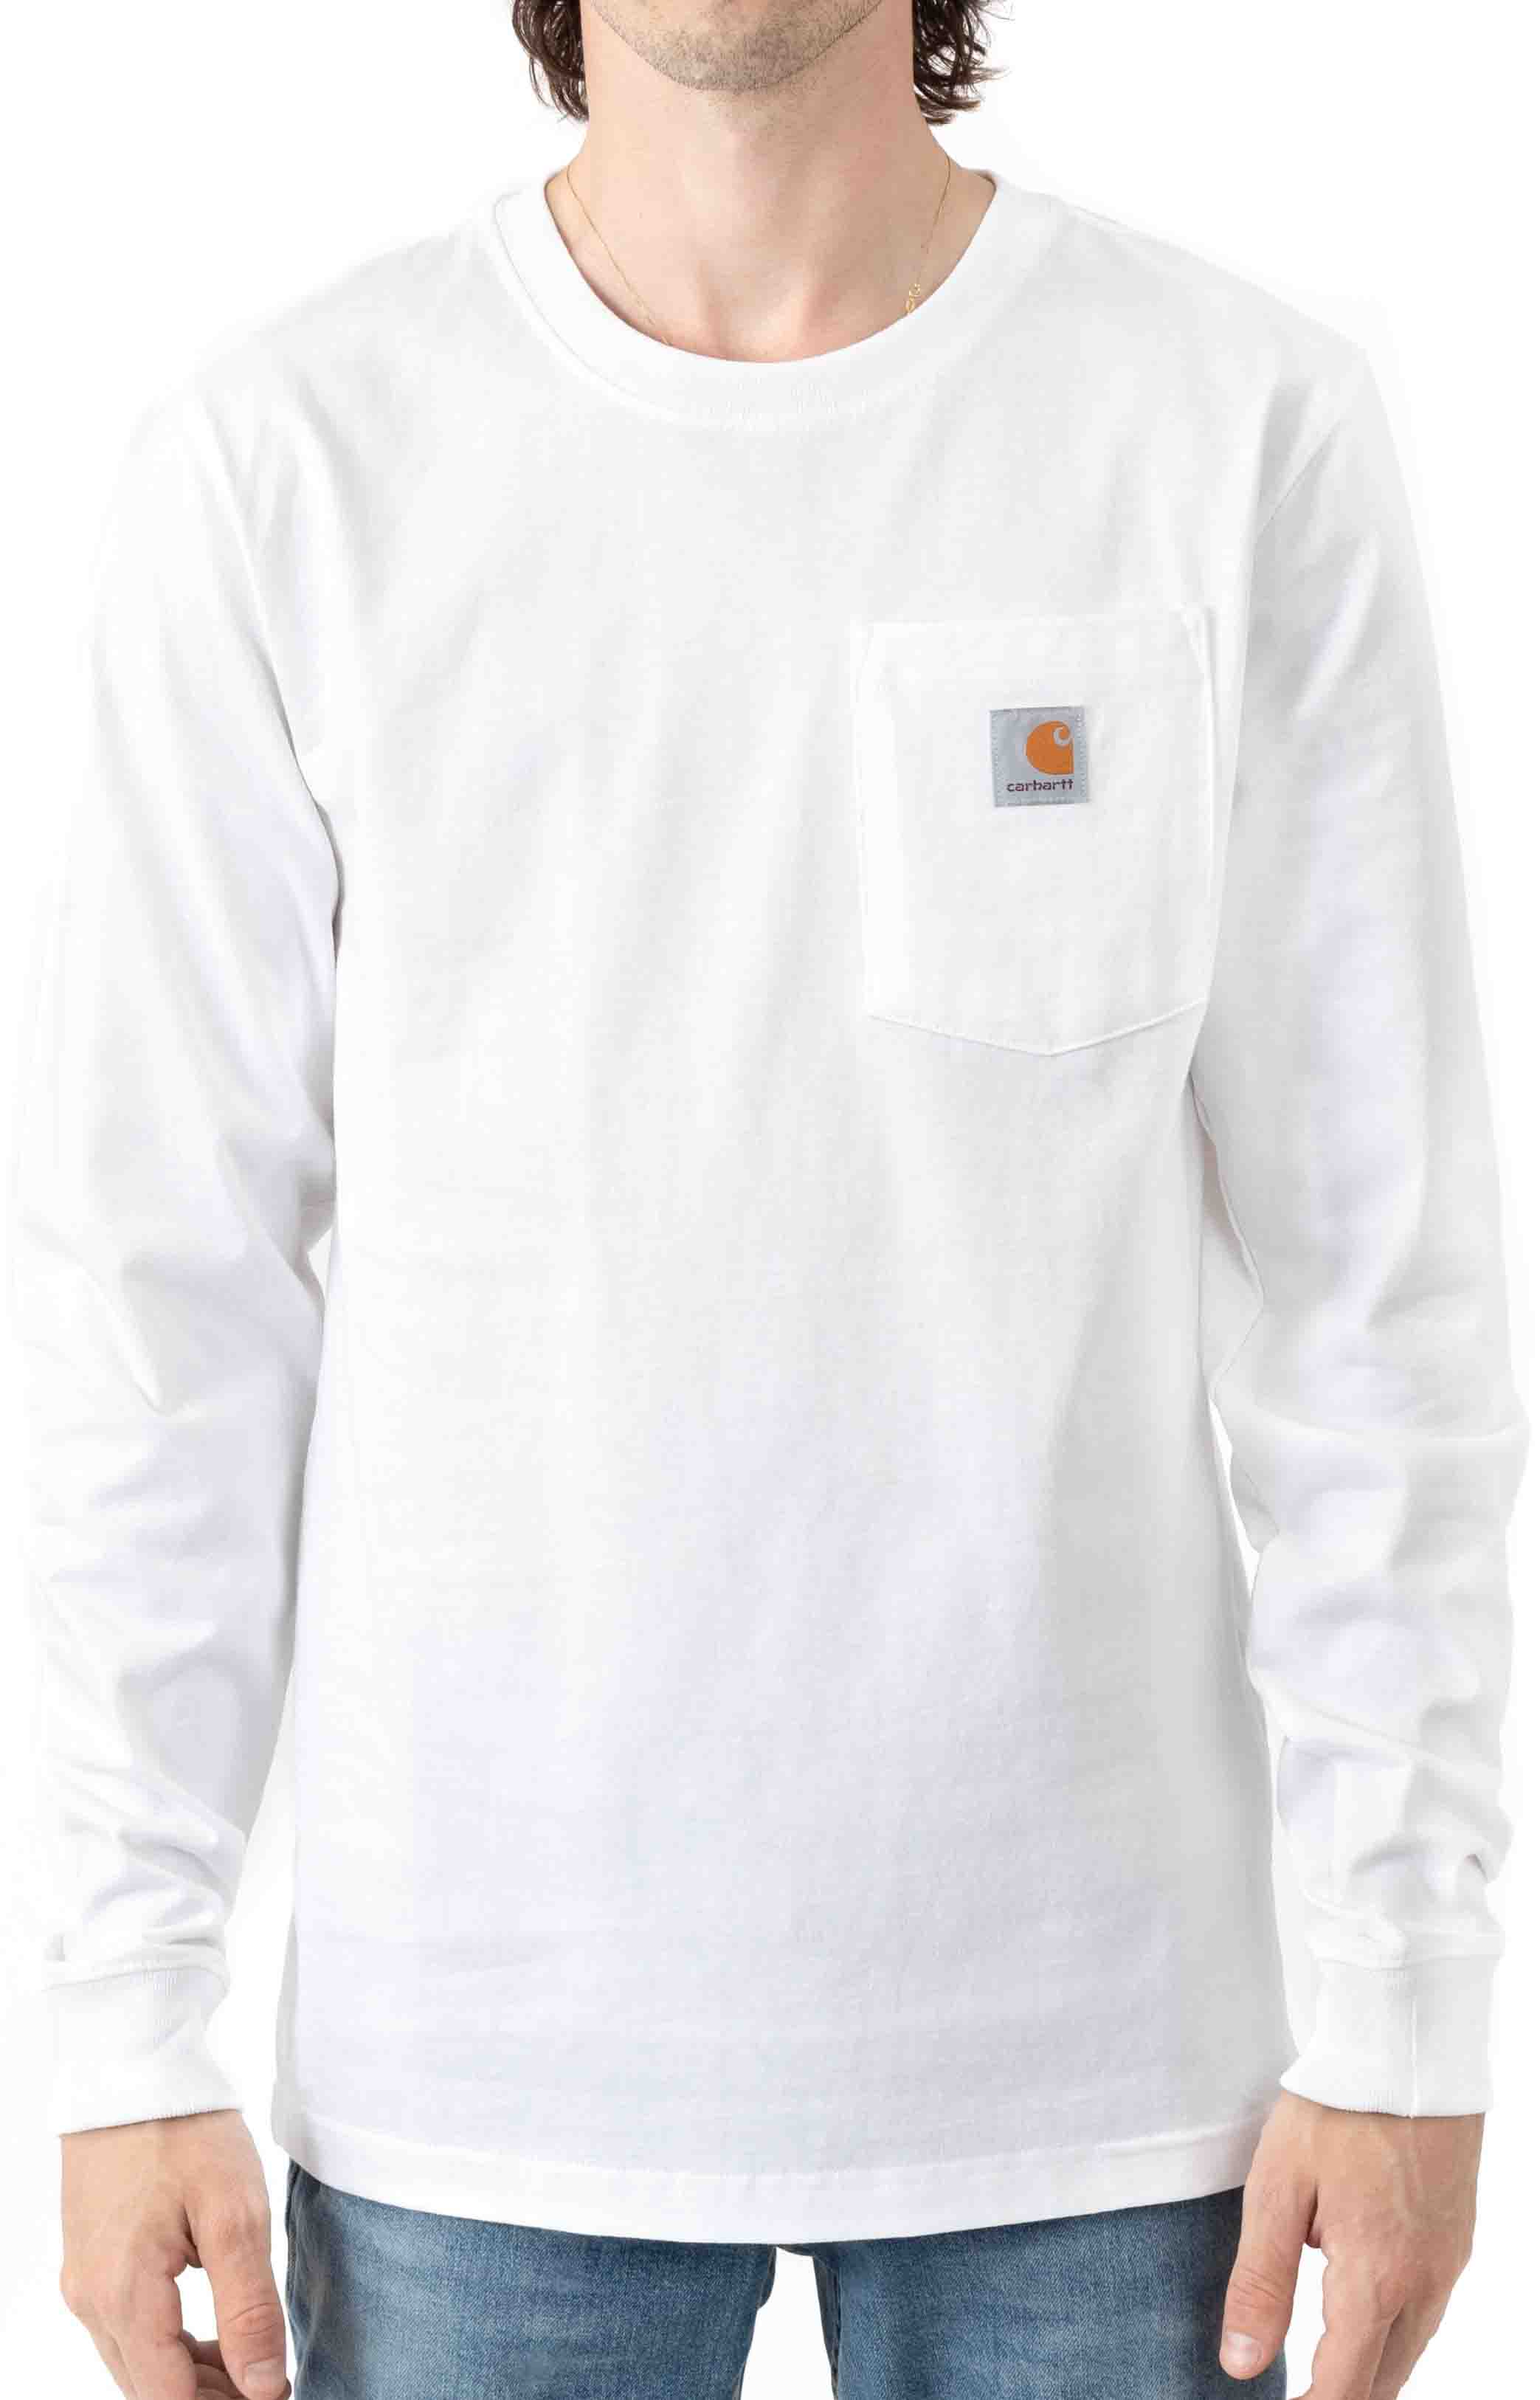 (104895) Relaxed Fit Heavyweight LS Pocket Craftsman Graphic T-Shirt - White  2